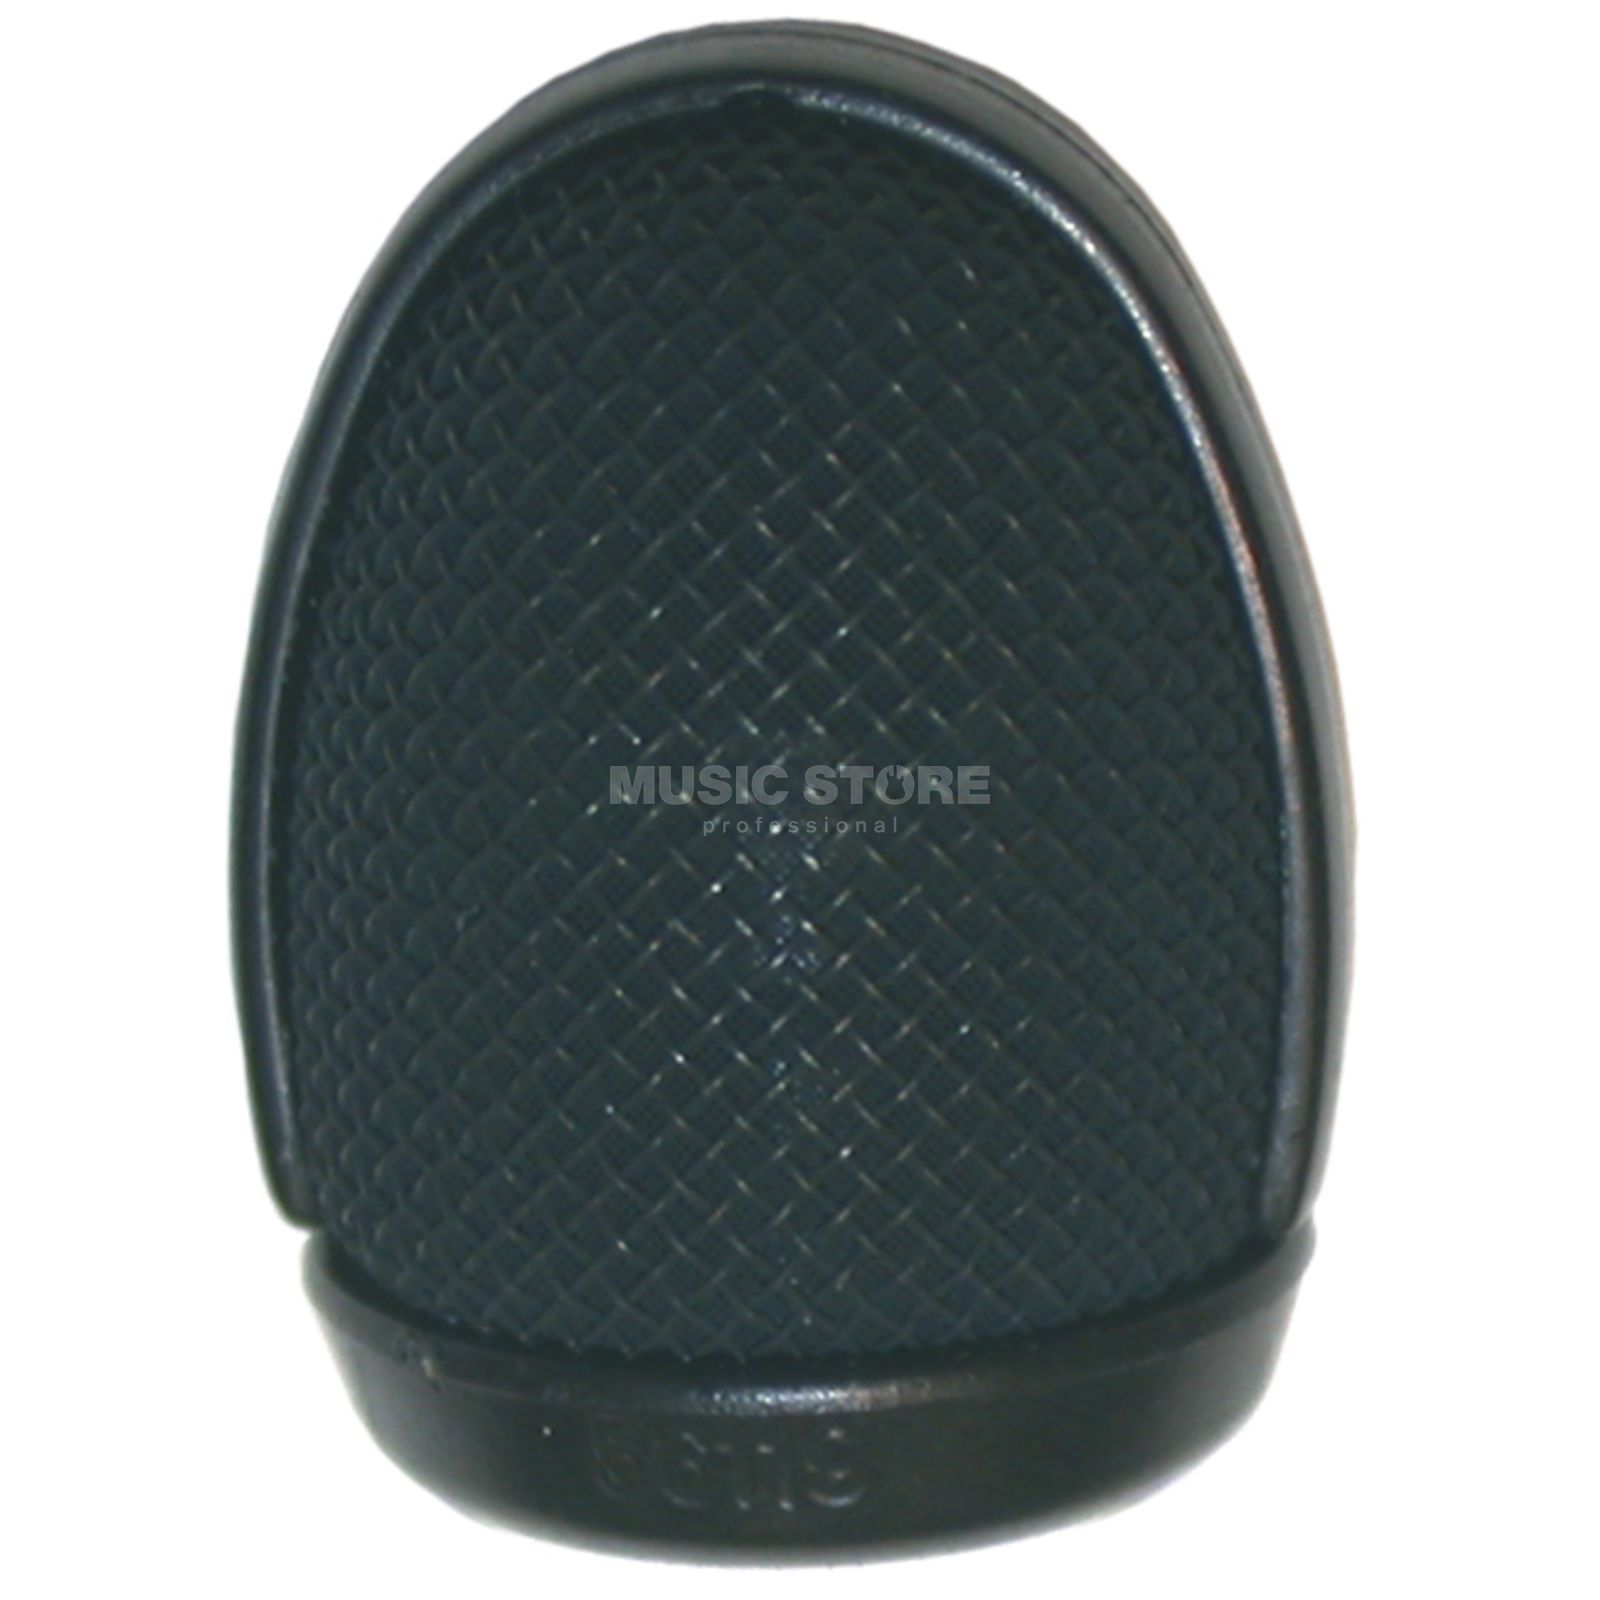 Sennheiser MZW 104 ANT Wind Screen for MKE 104/102 Produktbillede